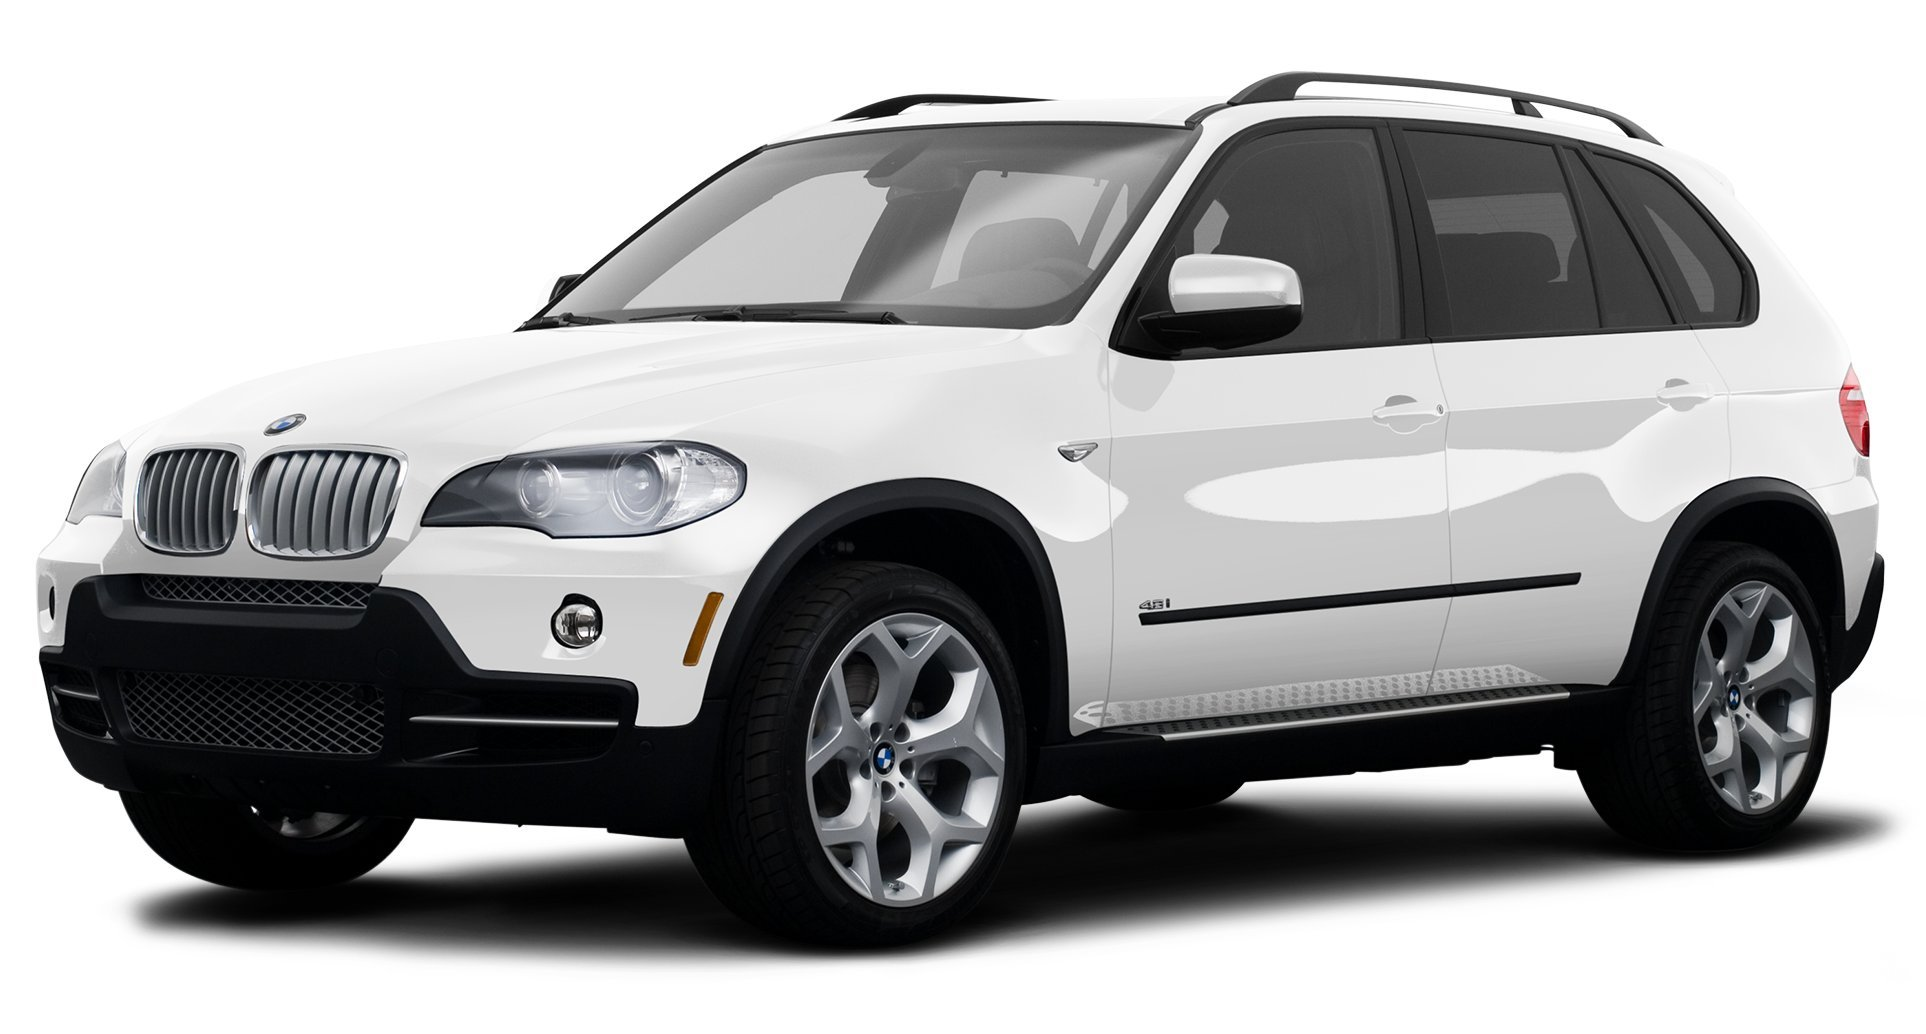 2008 bmw x5 reviews images and specs vehicles. Black Bedroom Furniture Sets. Home Design Ideas